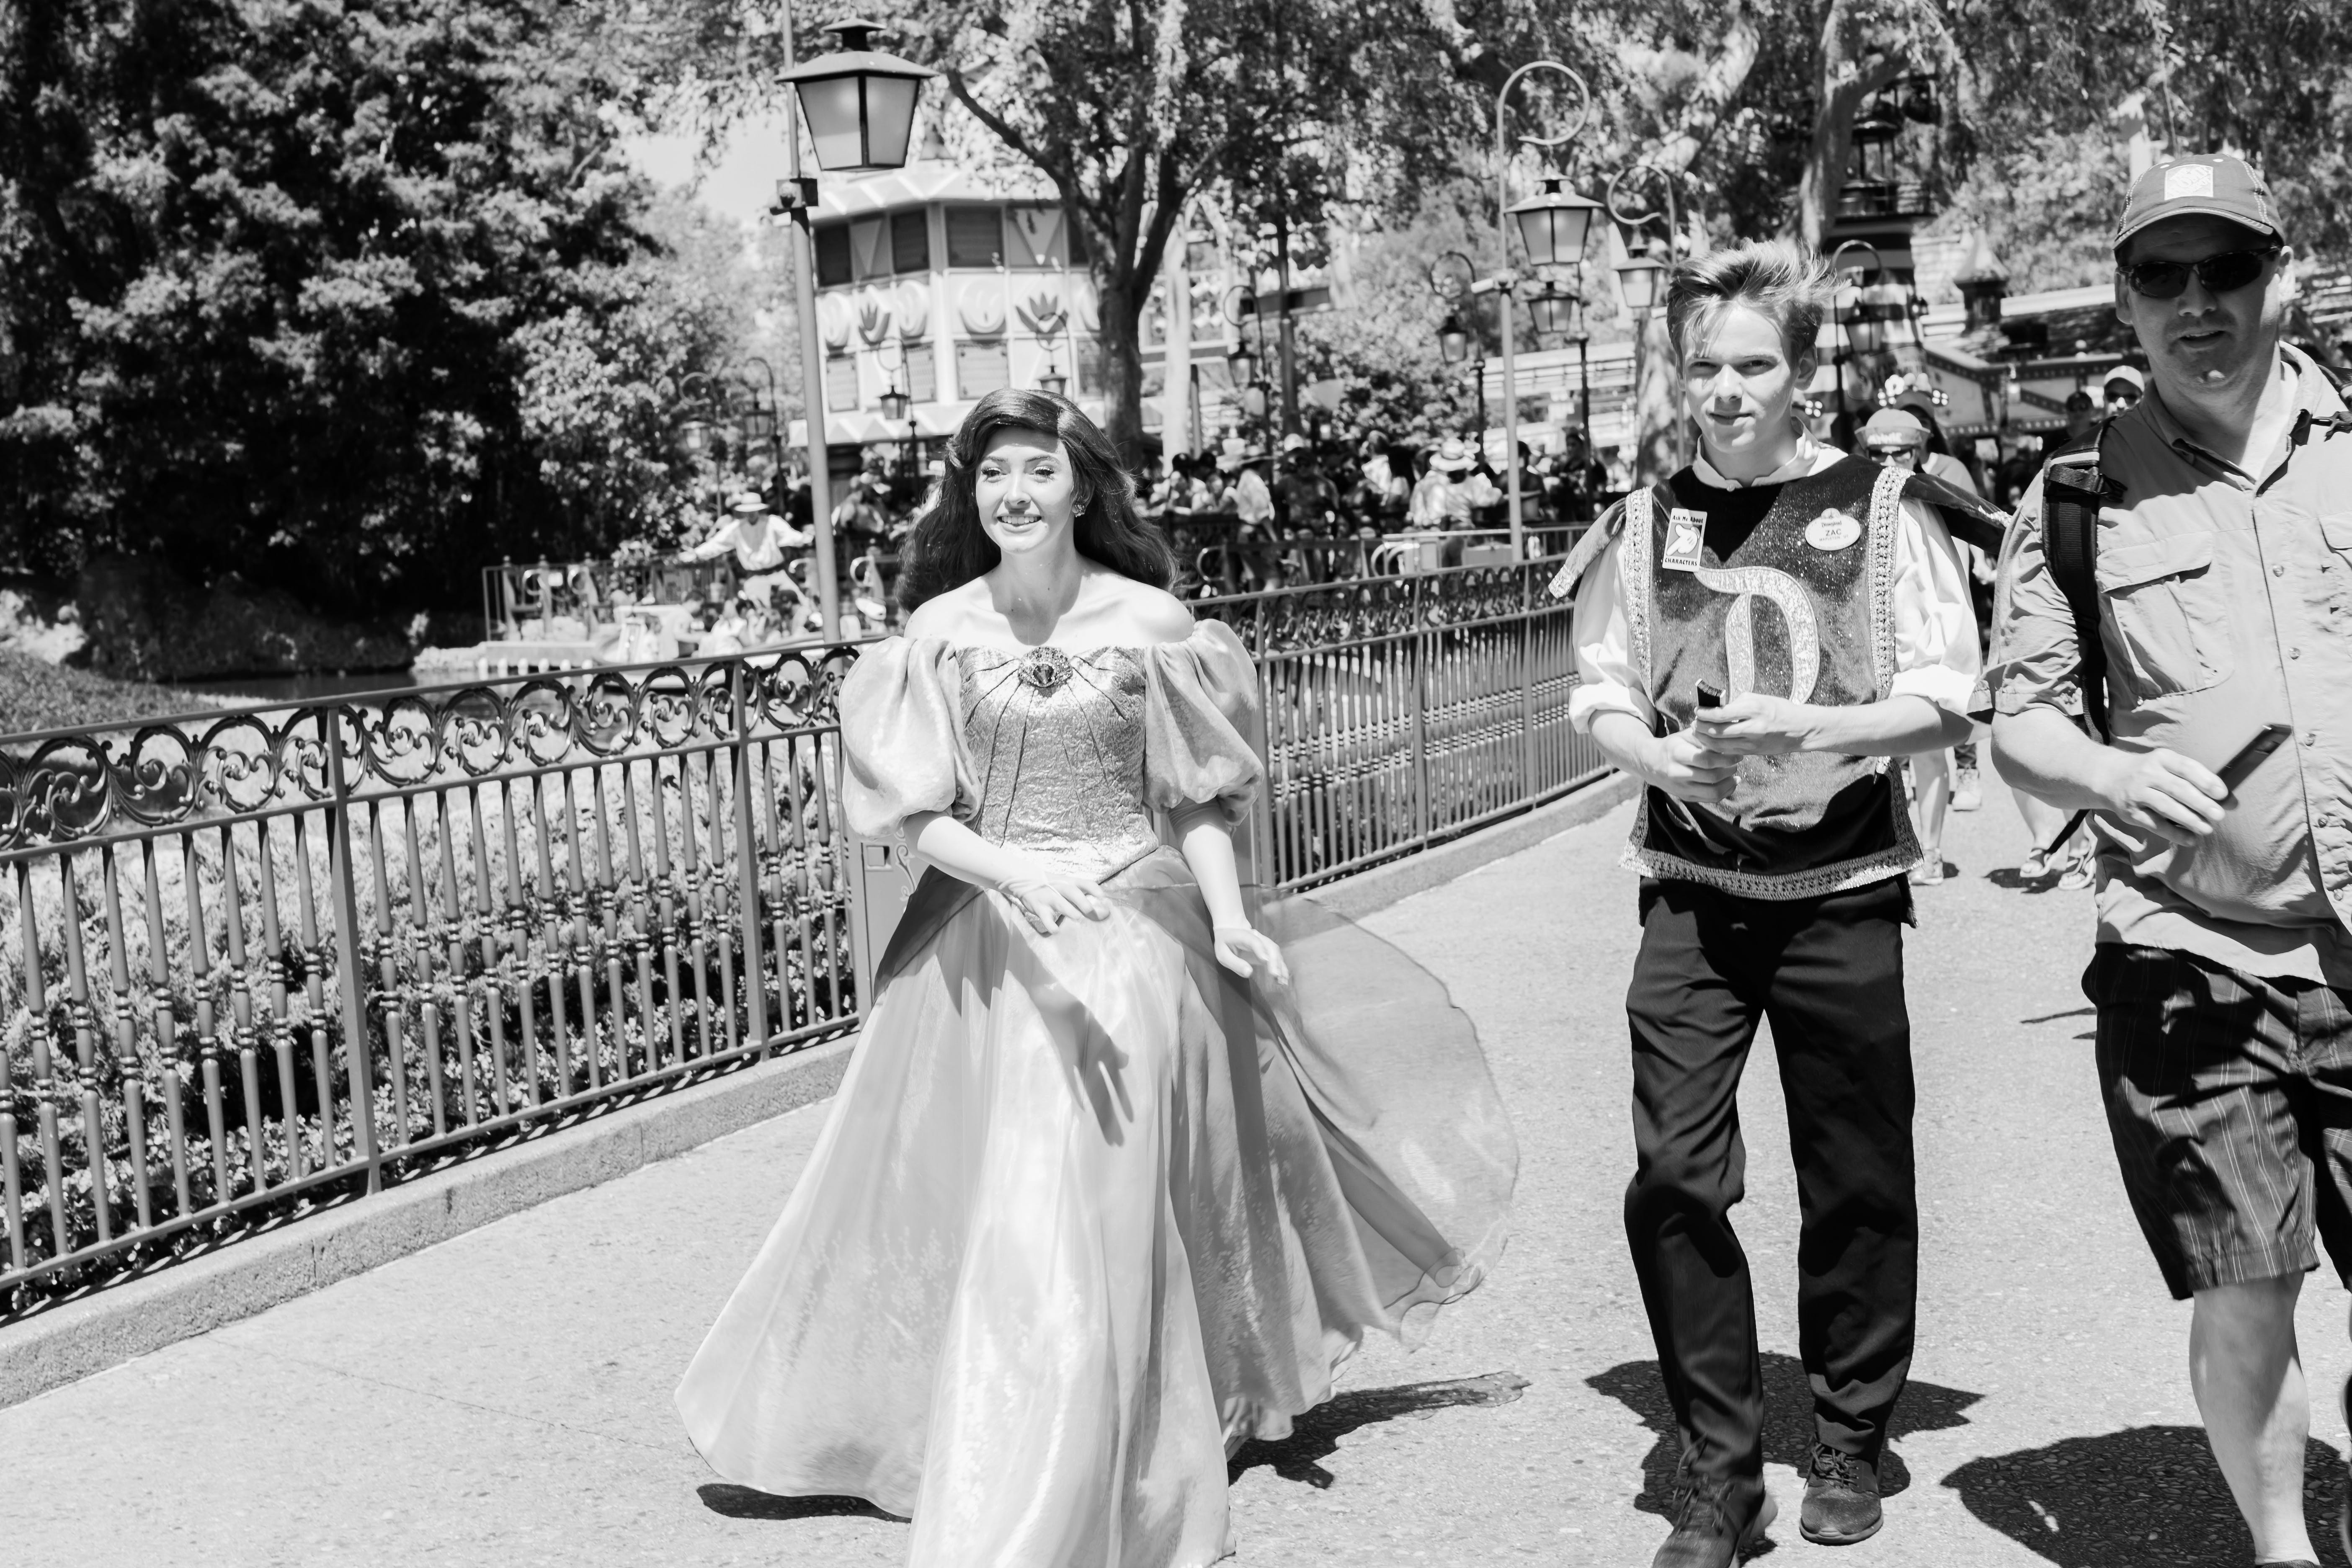 A Disneyland cast member dressed as Ariel, from The Little Mermaid, walks through the park.